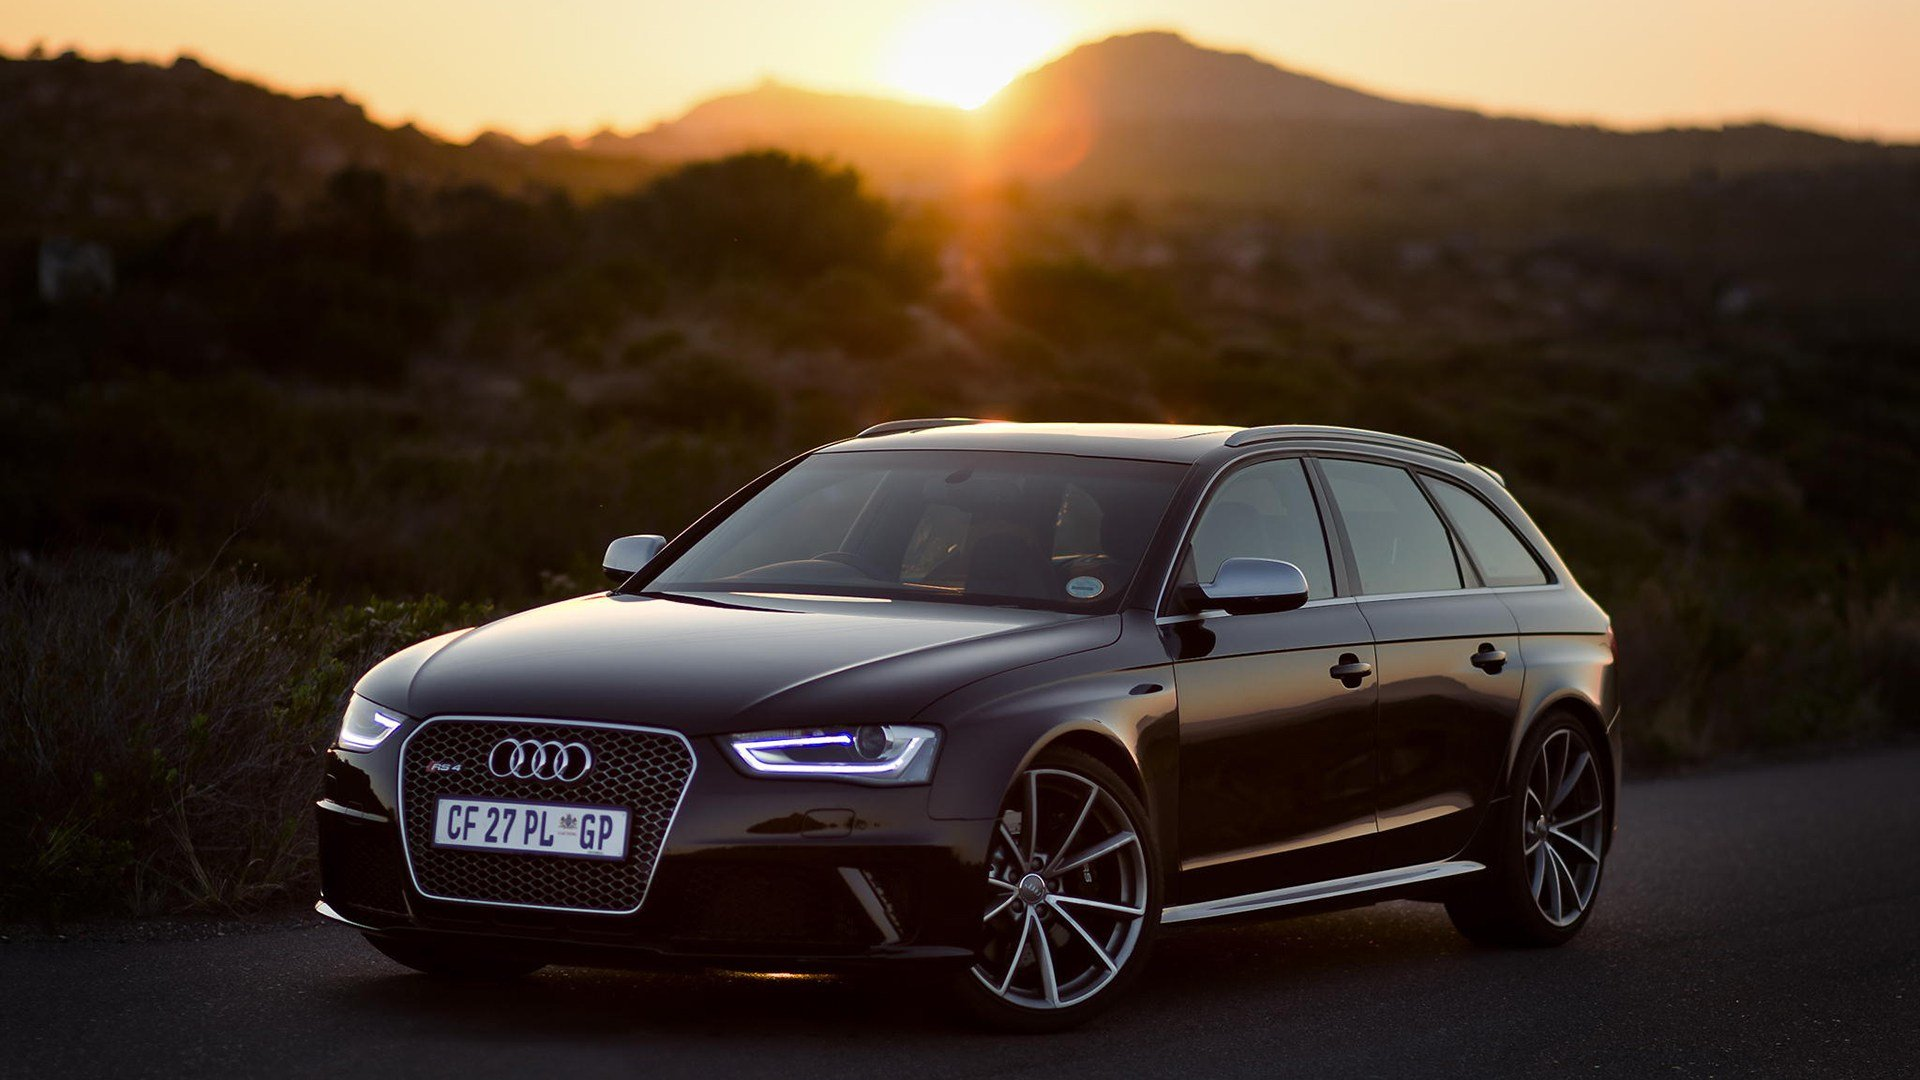 Latest Audi Cars Wallpapers Full Hd Free Download